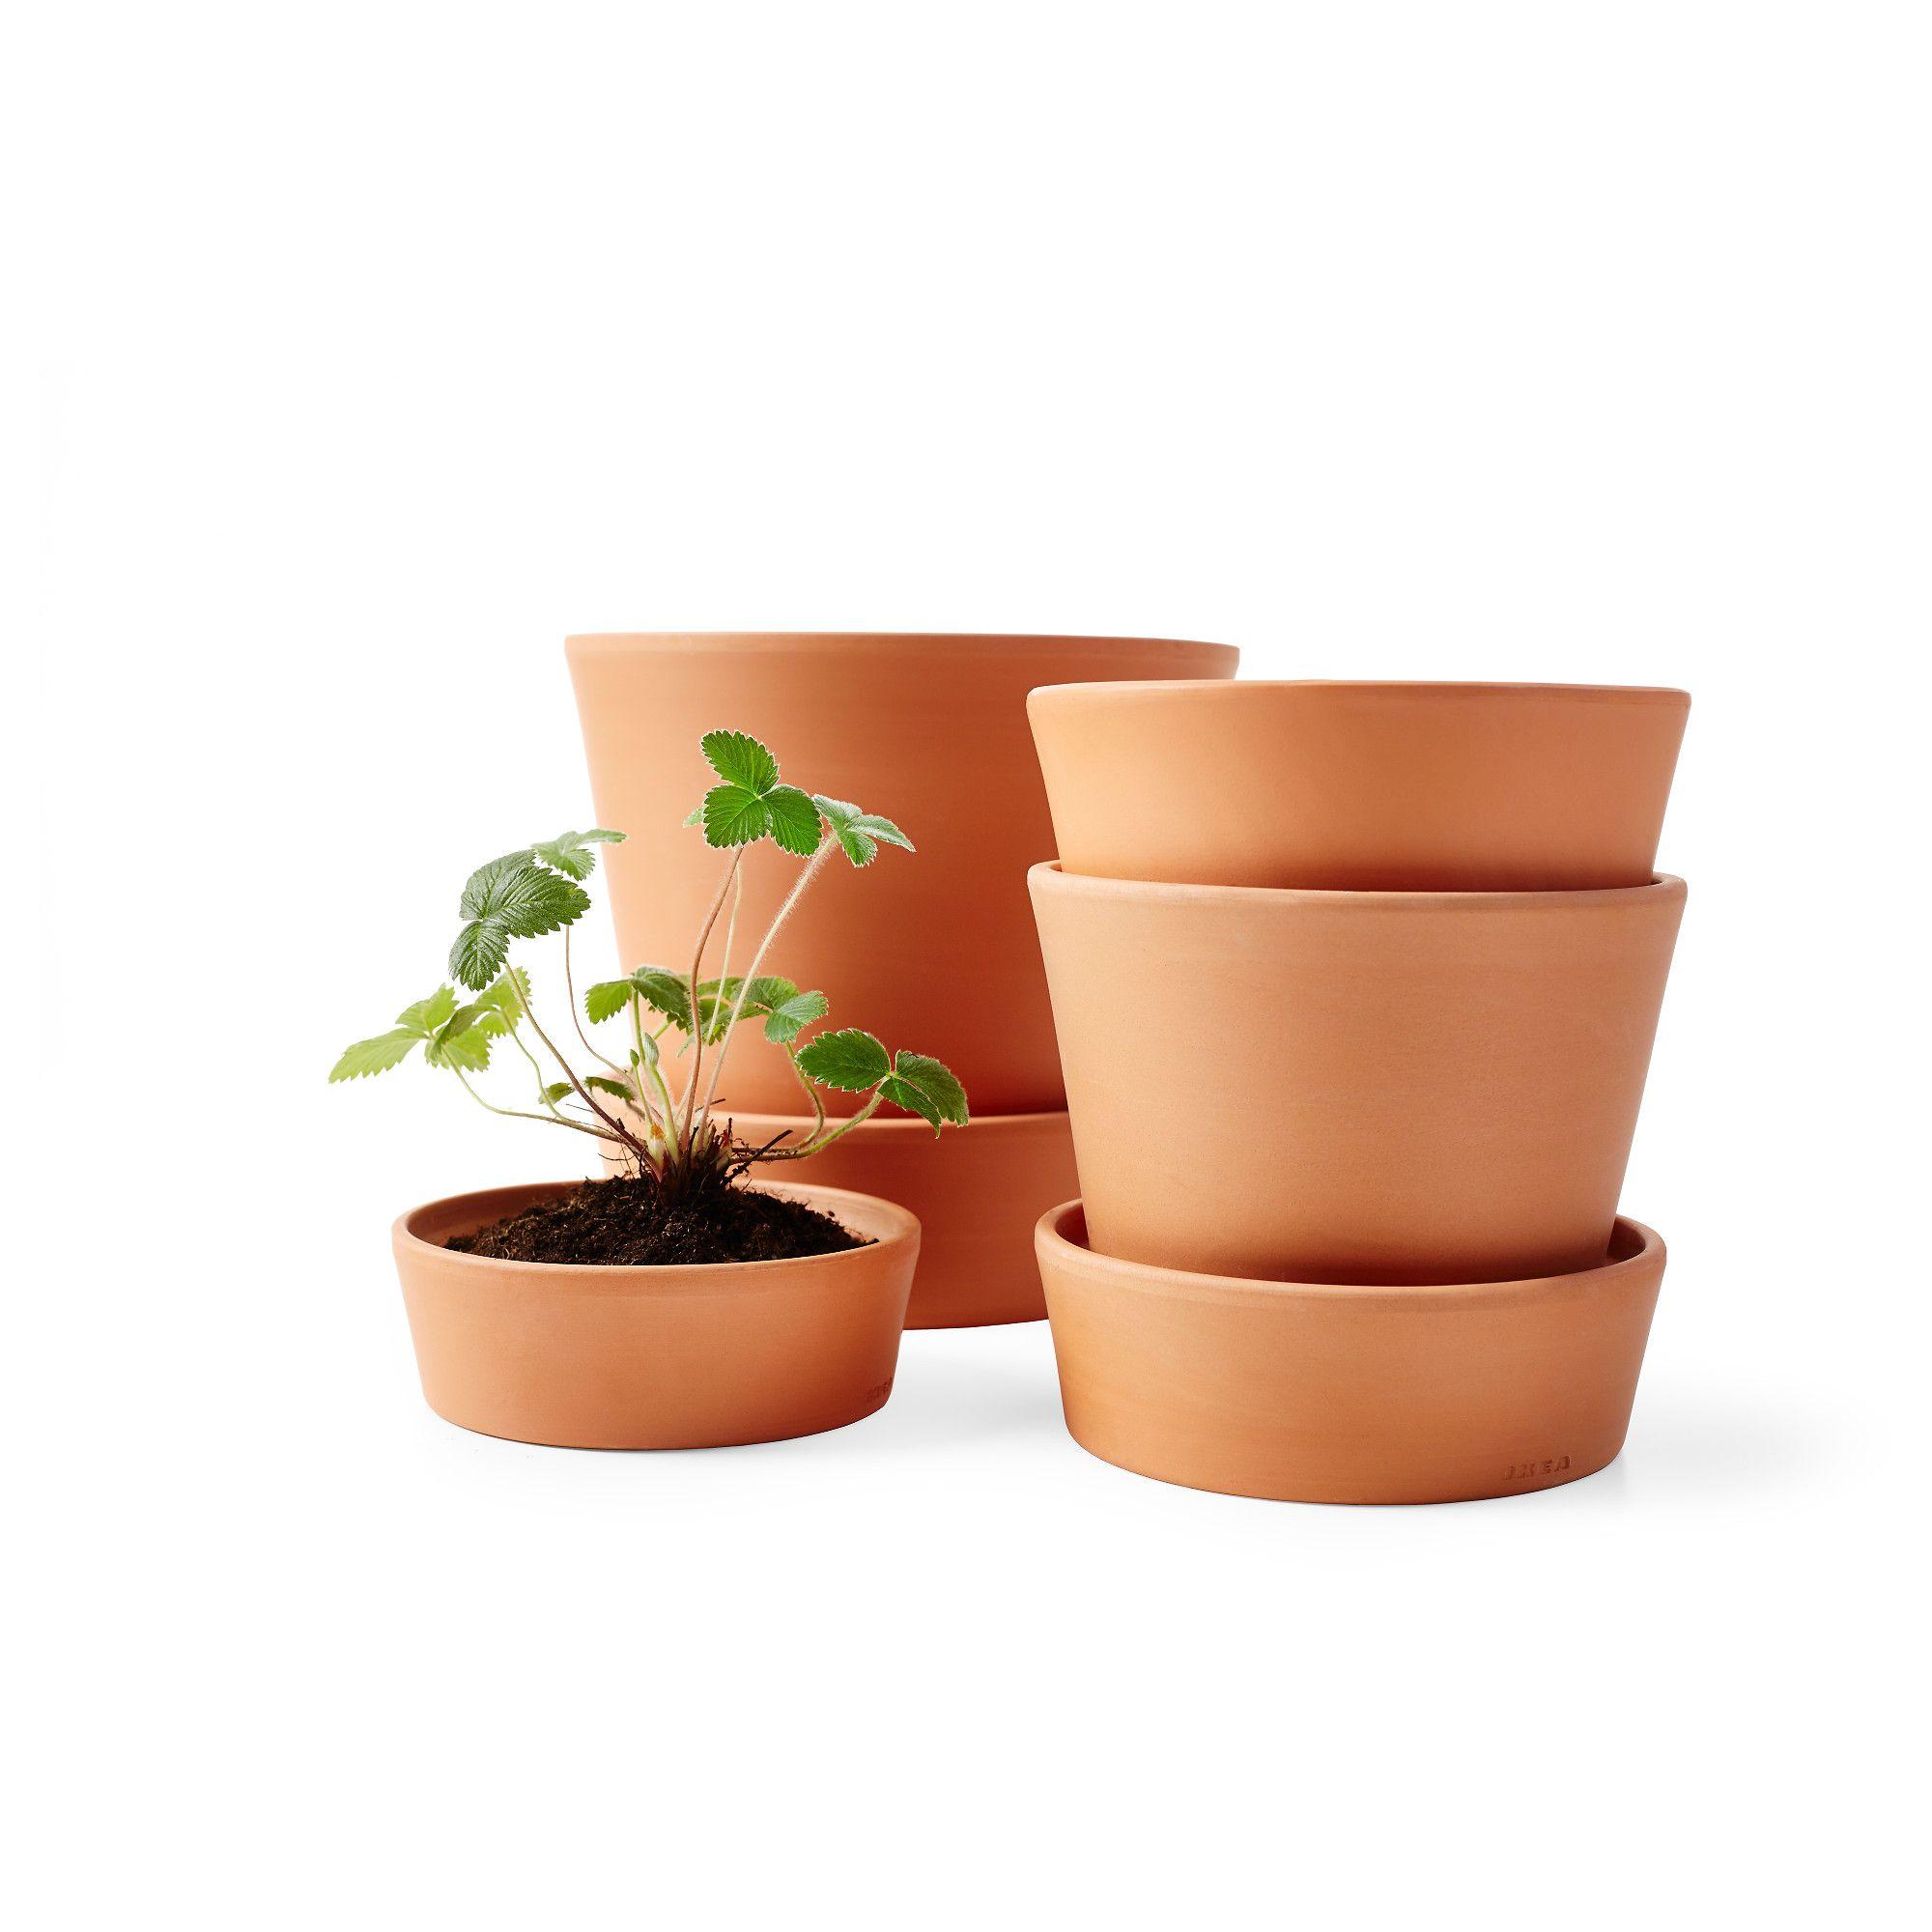 Ikea Indoor Garden: INGEFÄRA Plant Pot With Saucer Outdoor Indoor